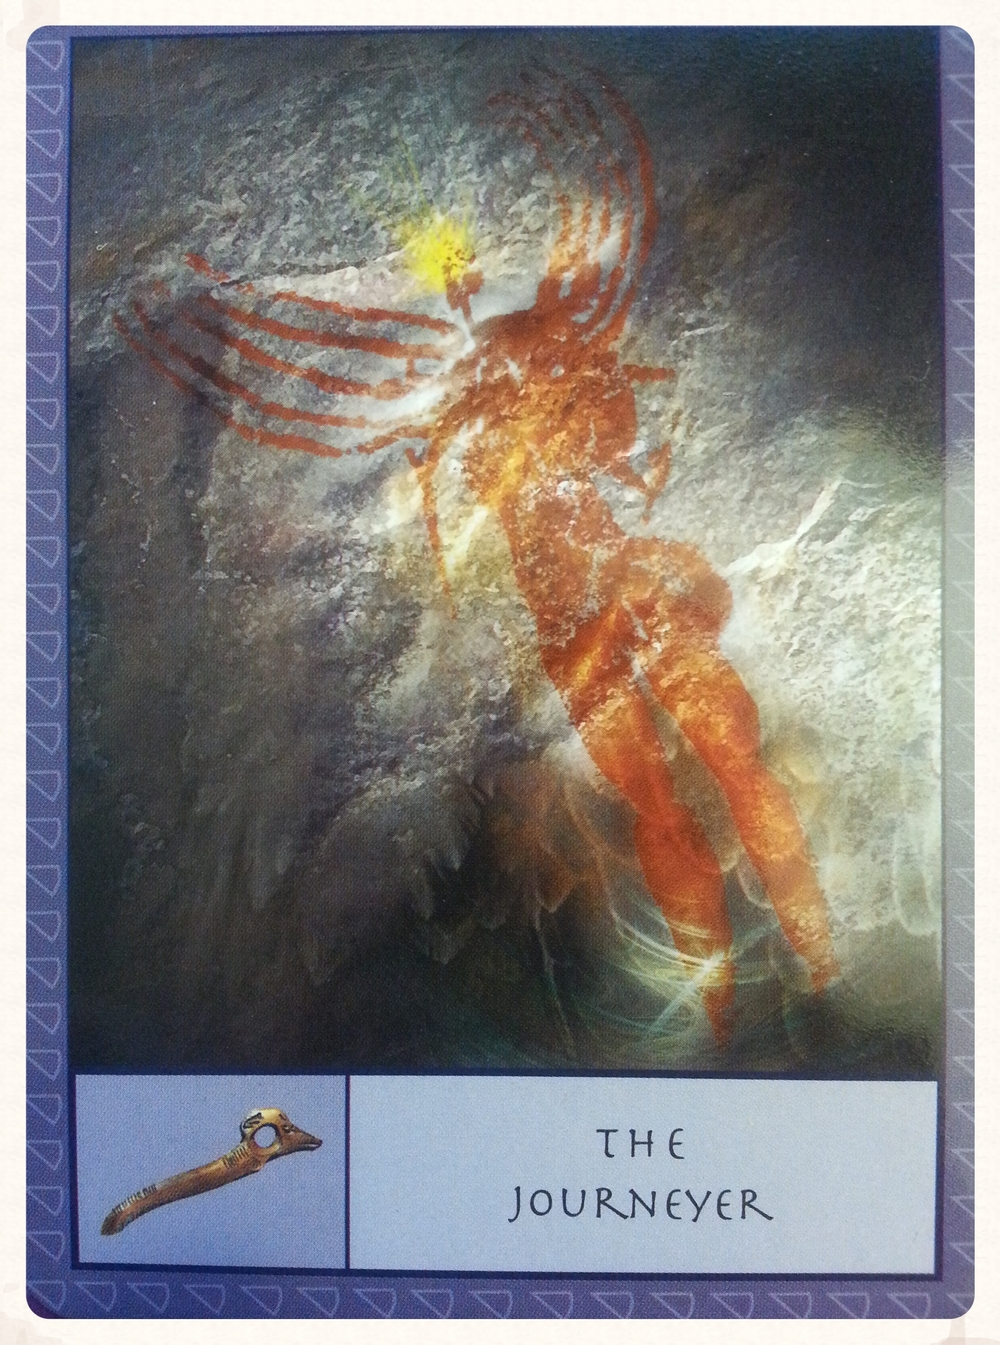 """"""" THE JOURNEYER CARD REPRESENTS THE SEEKER DURING A READING. IT'S SYMBOL IS A MAGICAL STAFF PIERCED WITH A HOLE, THROUGH WHICH THE SHAMANS OBTAINED A VIEW INTO THE WORLD OF SPIRIT."""" - p. 8 from the Guidebook"""